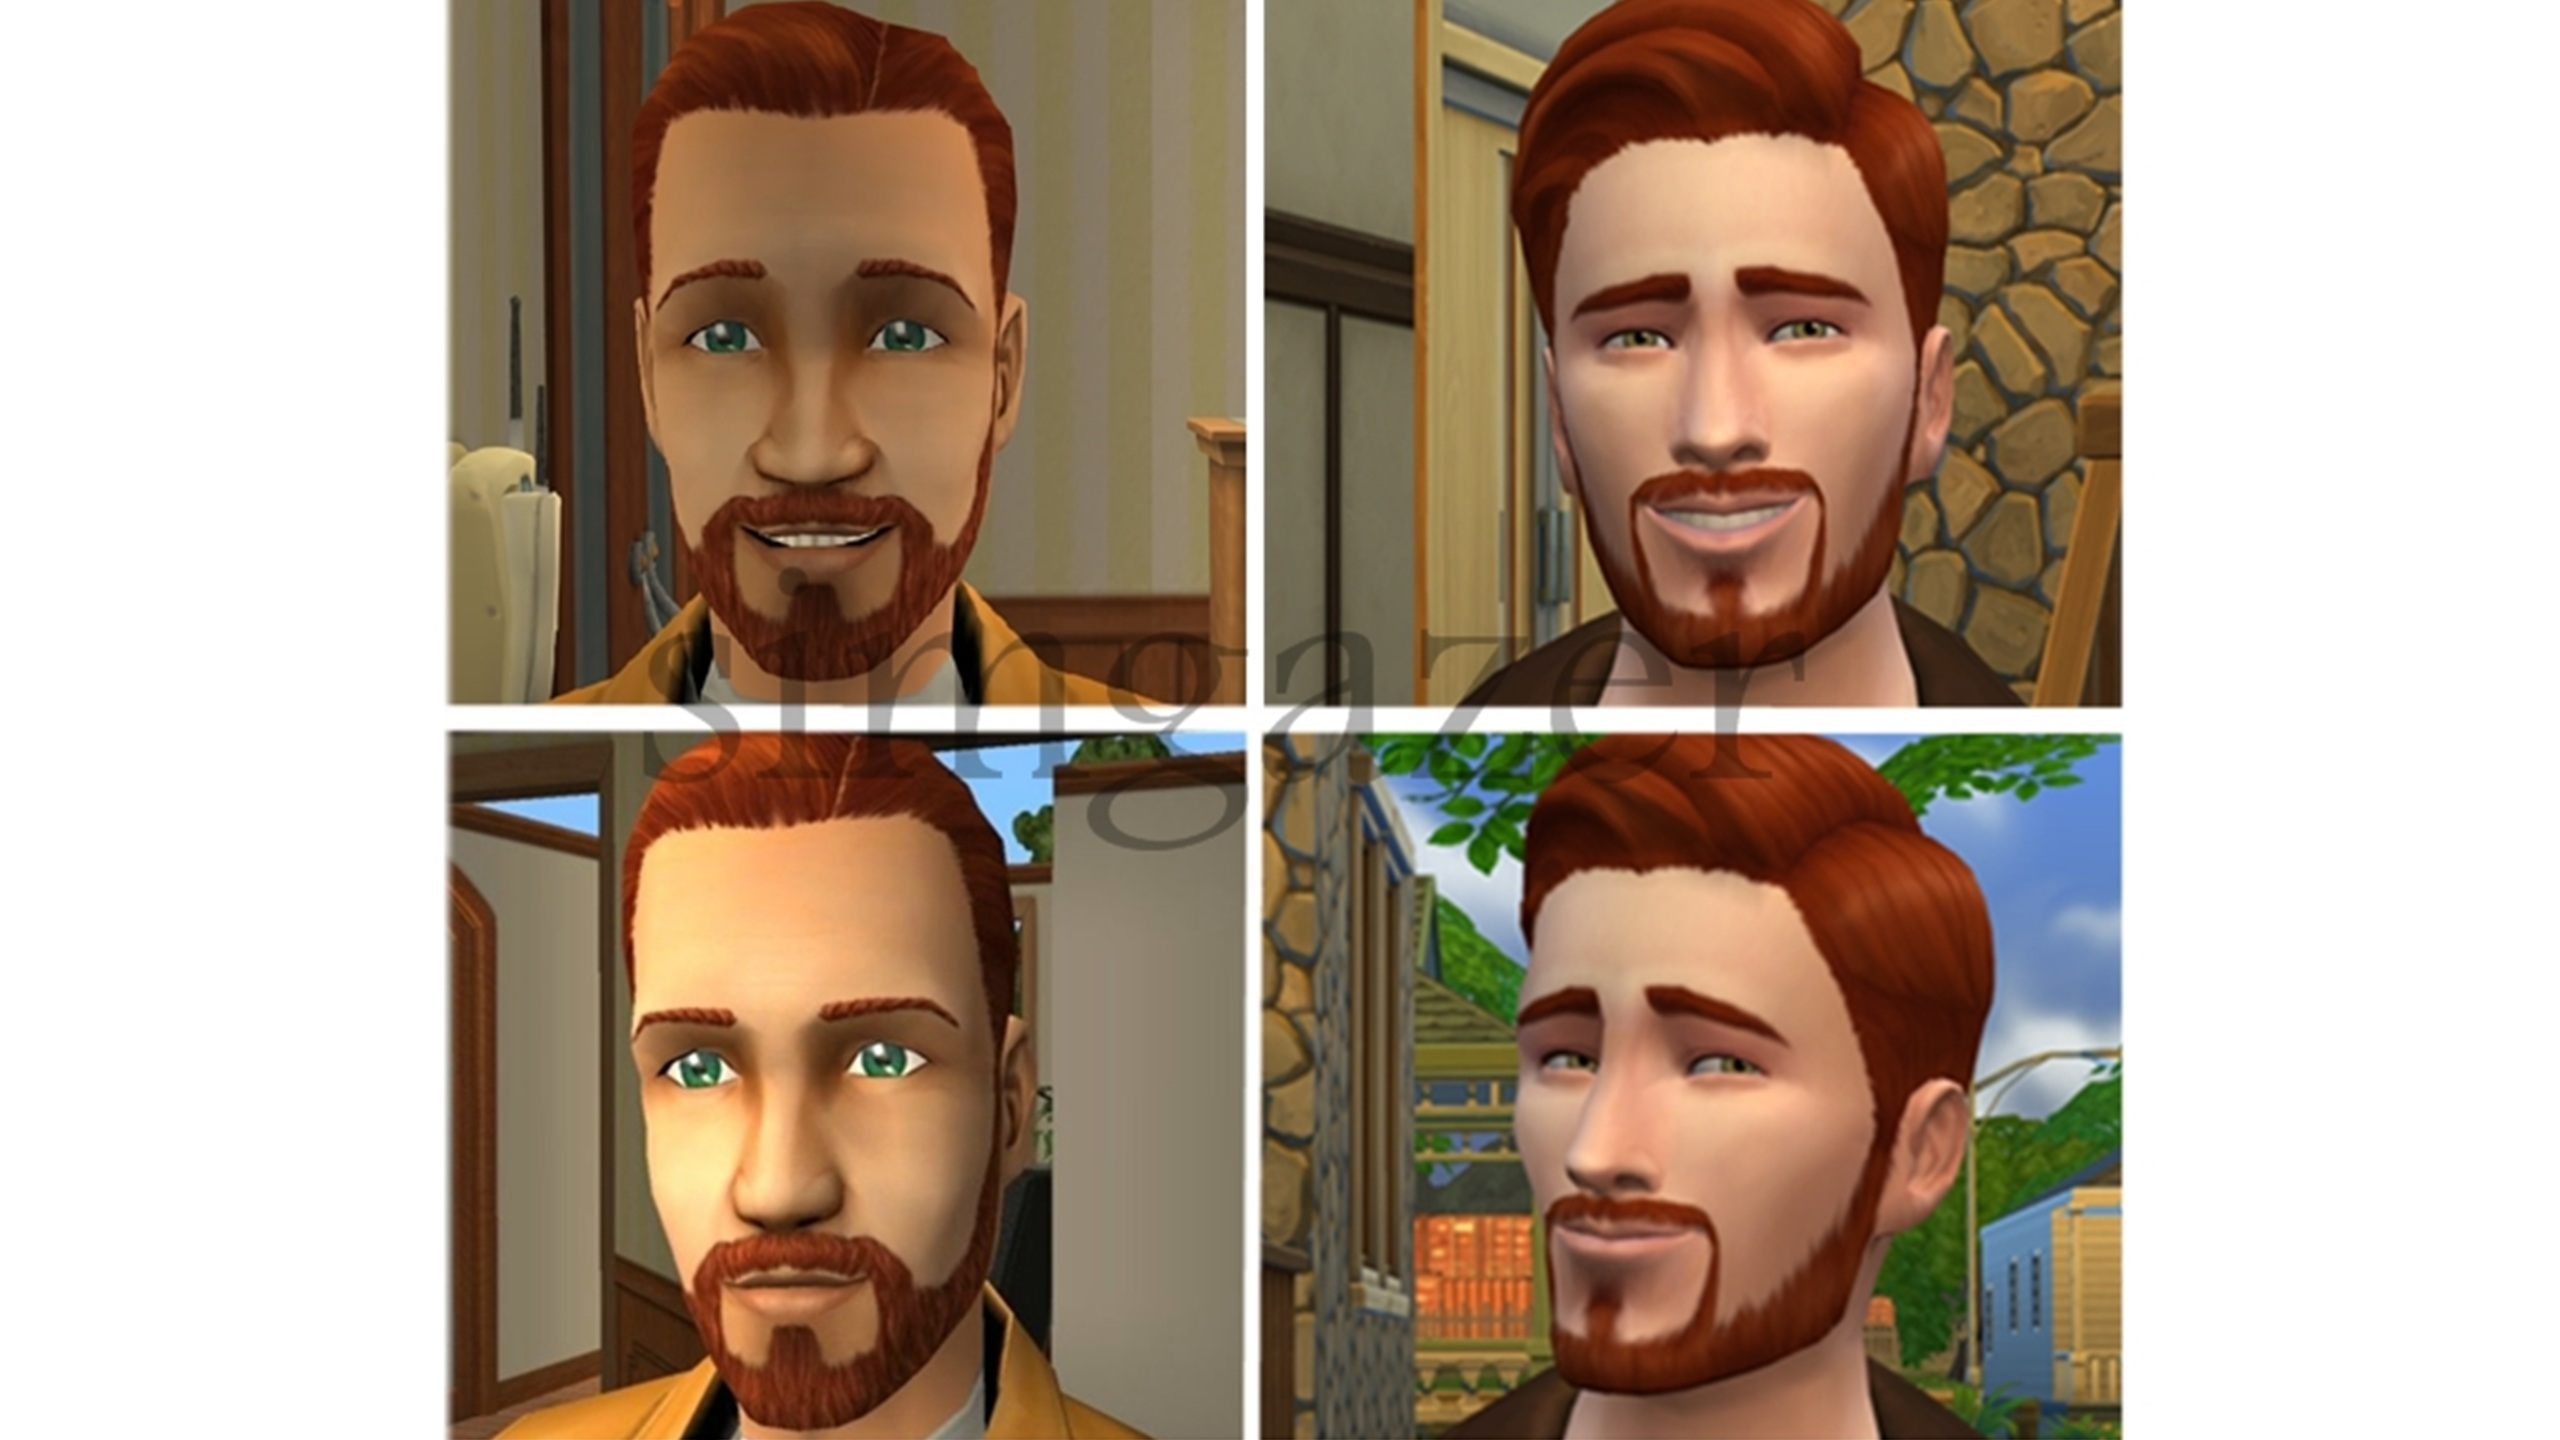 Not tell the sims 2 adult download sorry, not